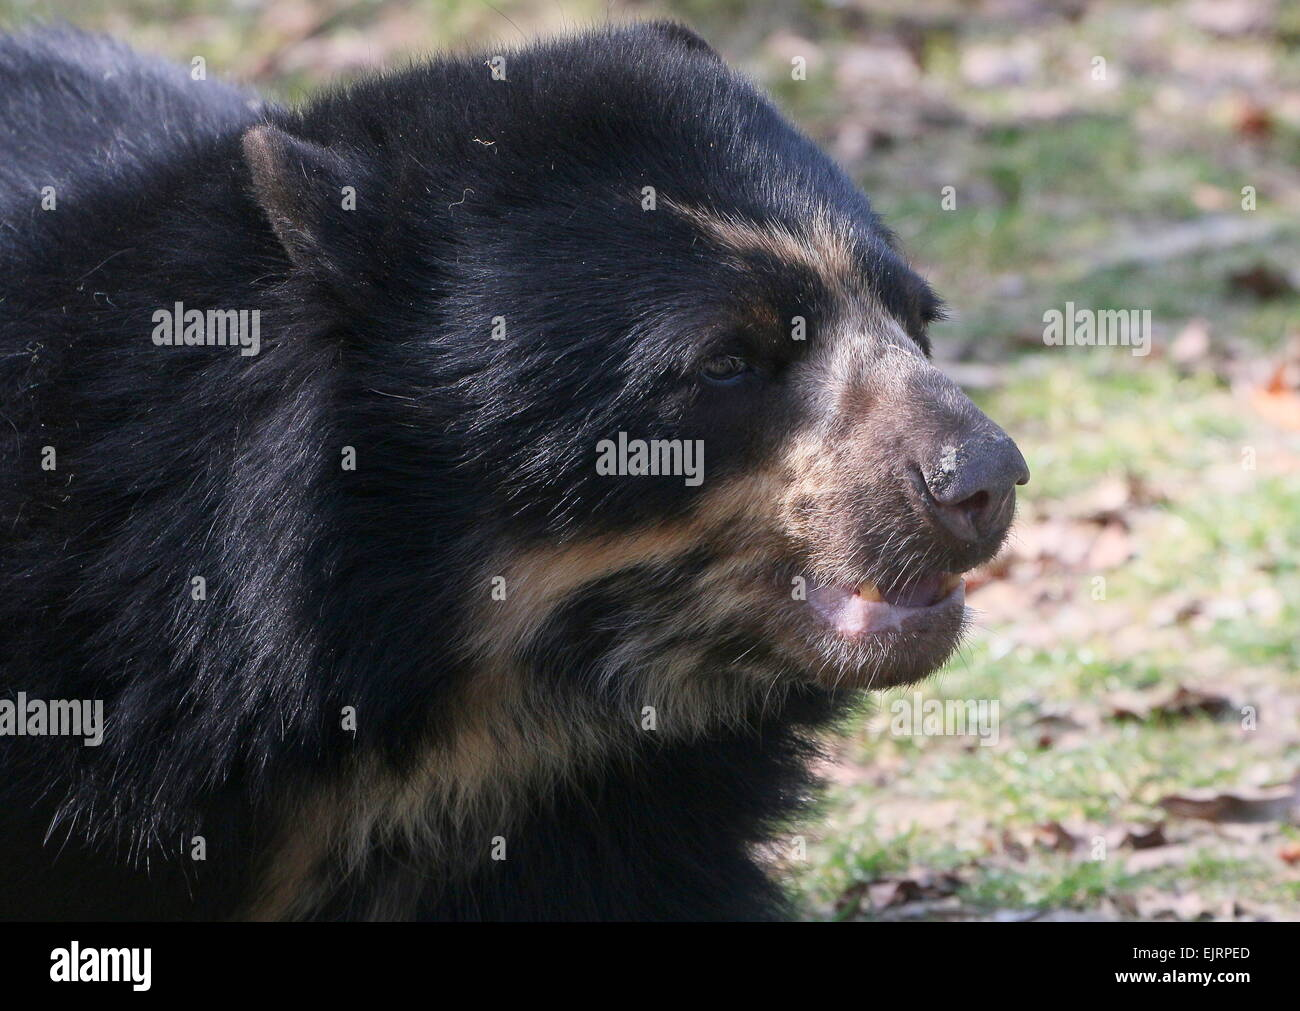 South American Spectacled or  Andean bear (Tremarctos ornatus) close-up of the head, seen in profile Stock Photo